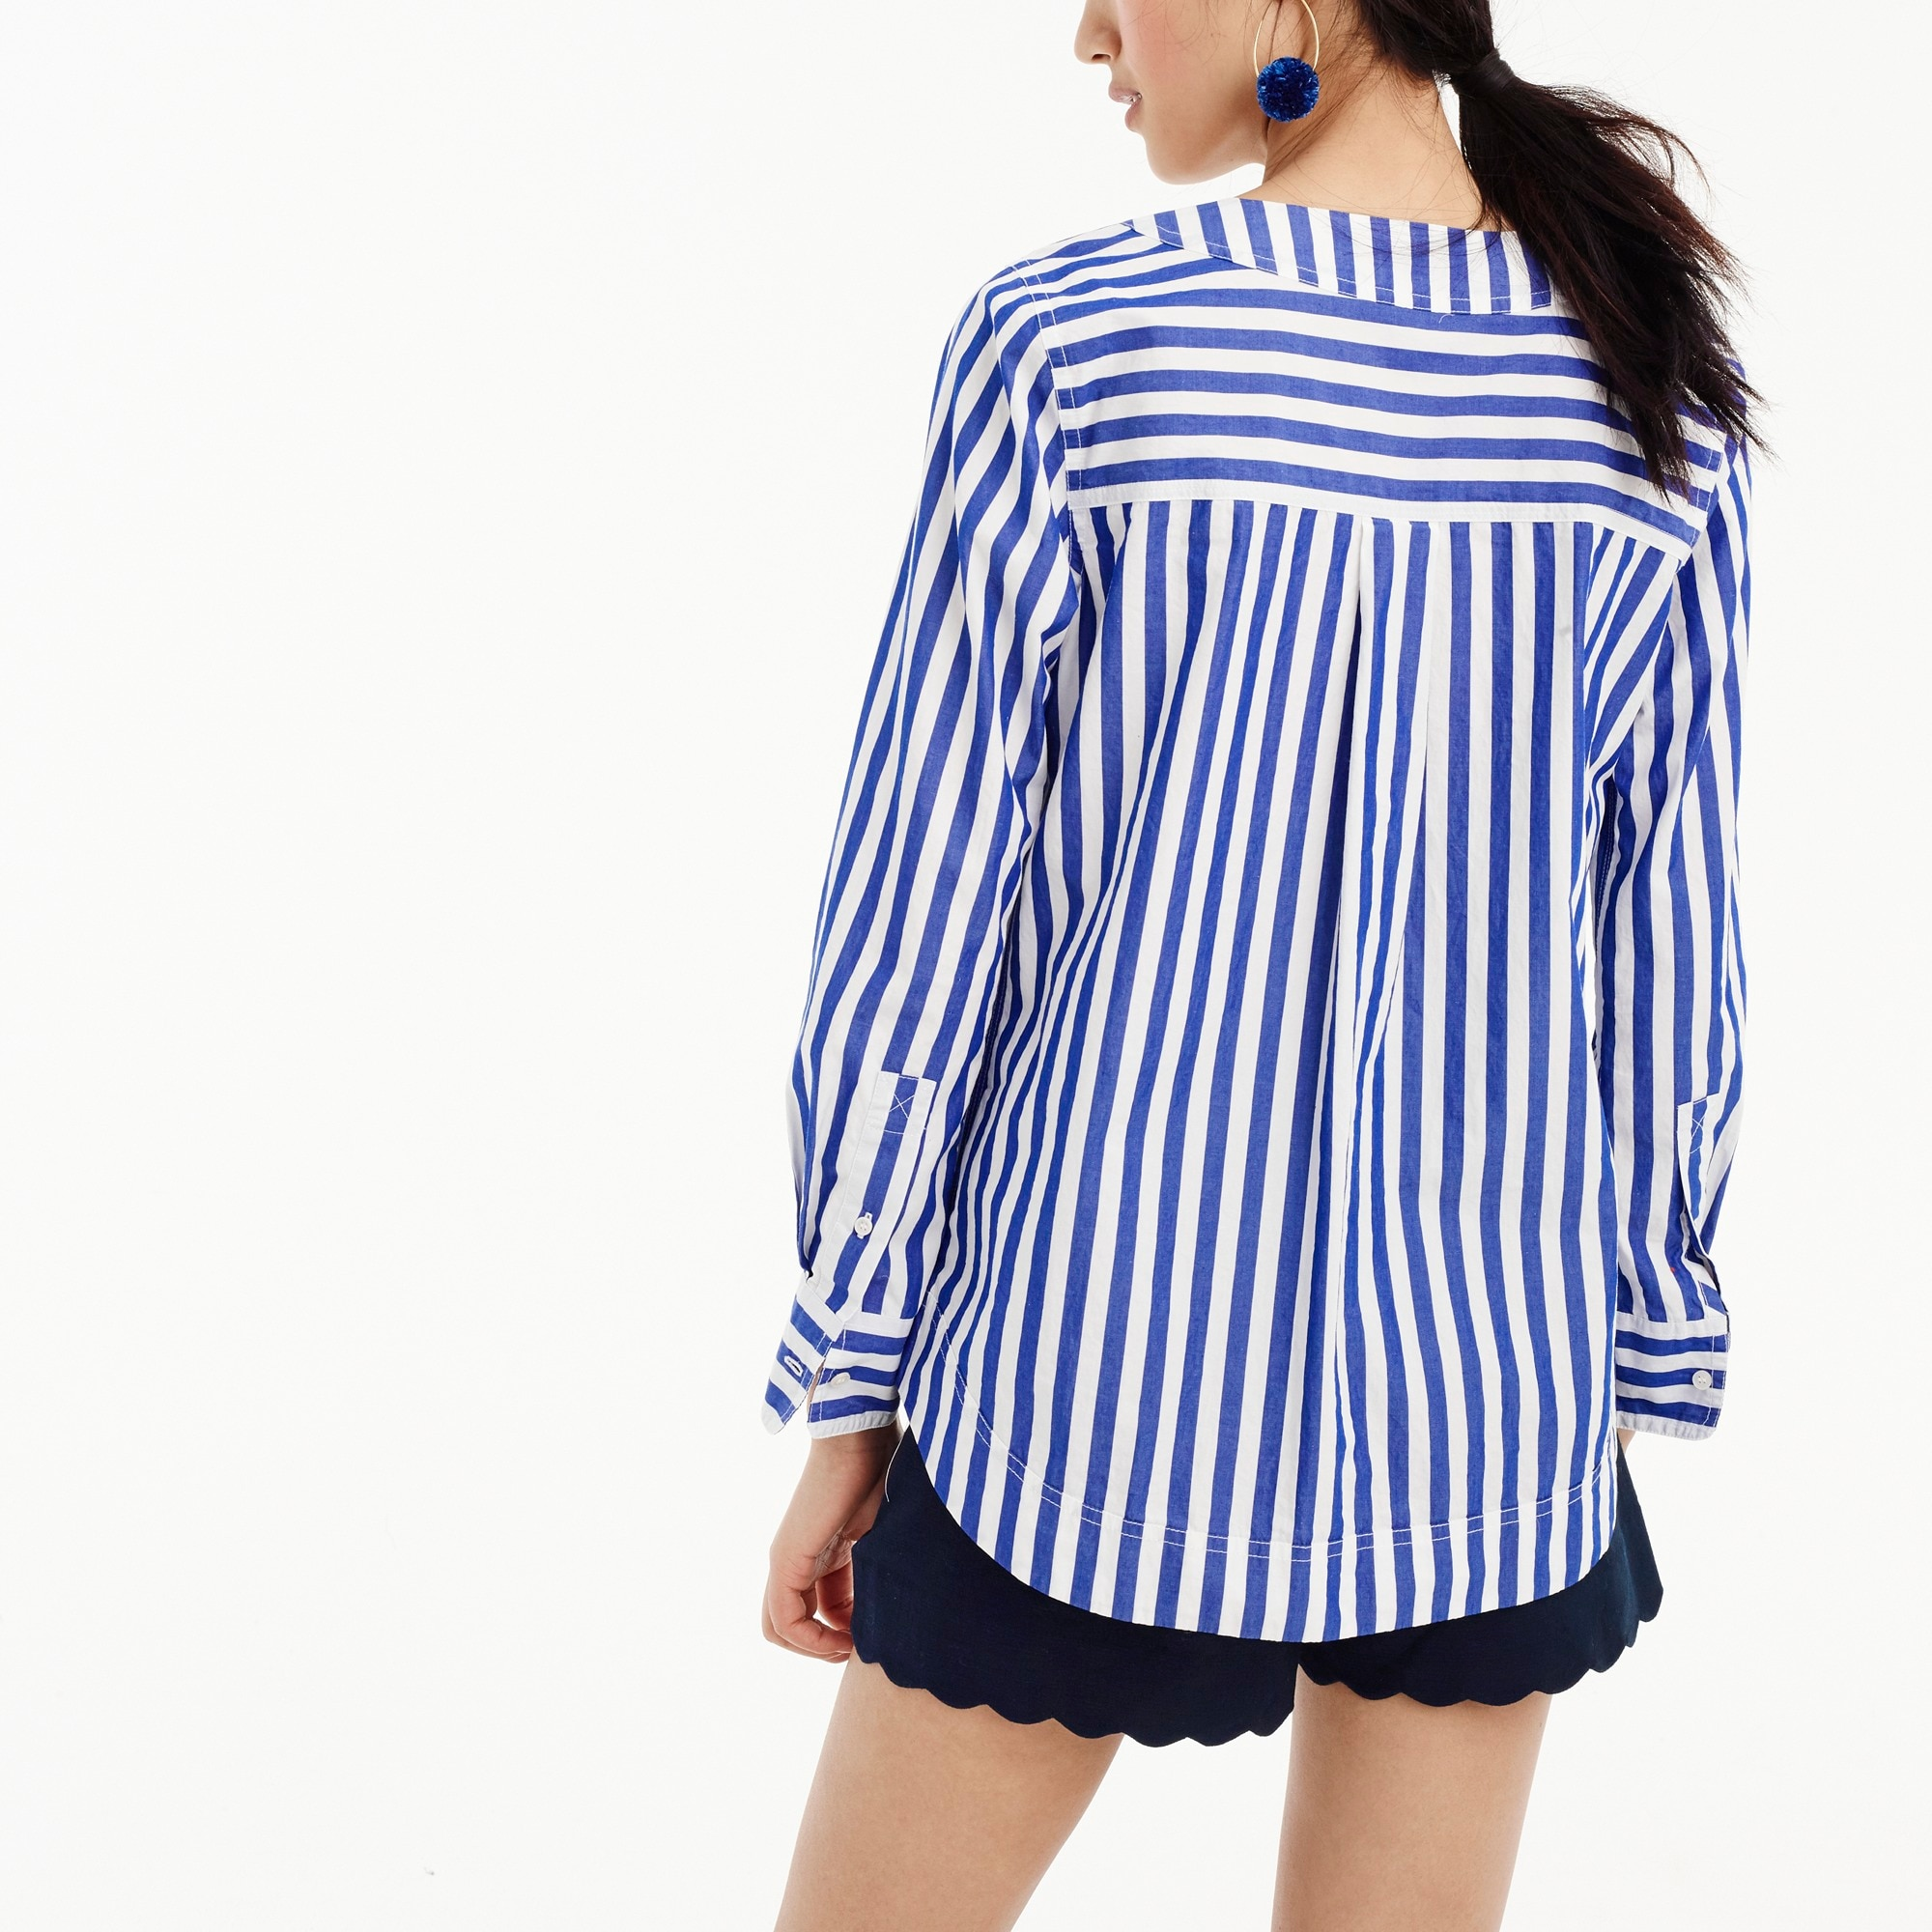 Image 3 for Tall tunic in bold stripe cotton poplin